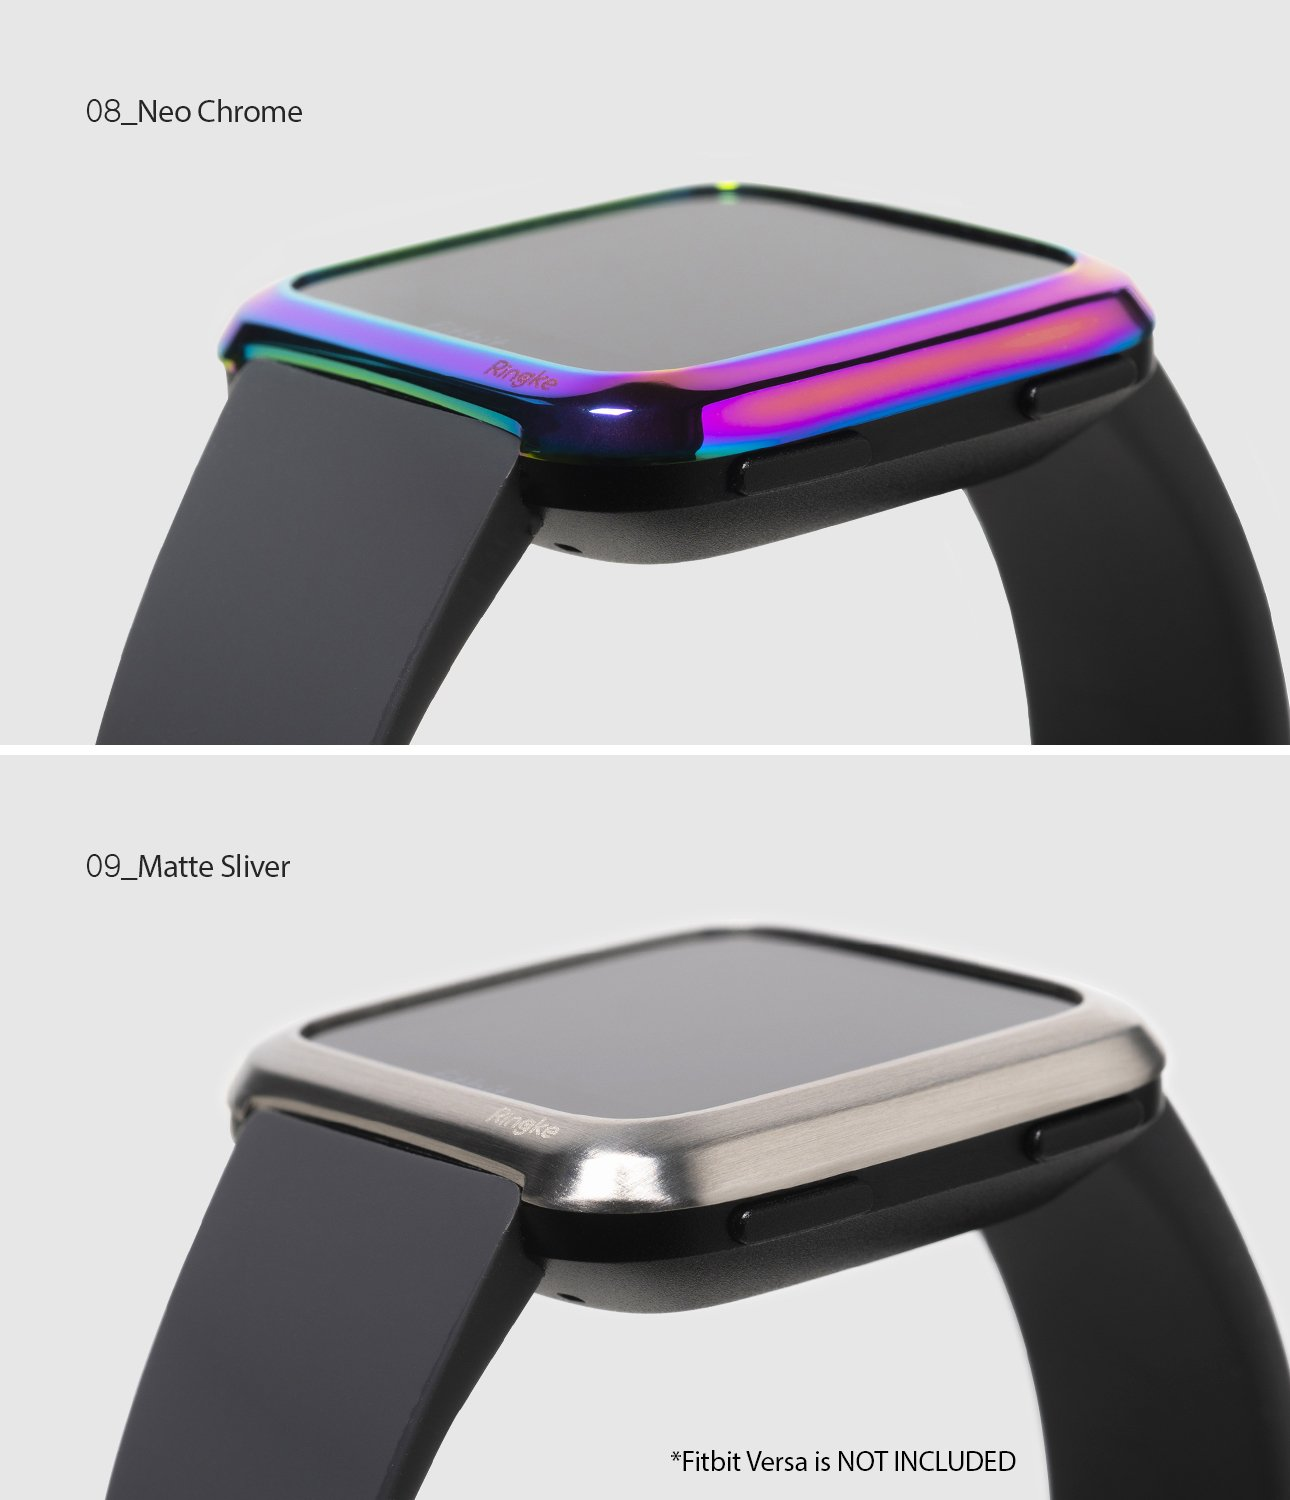 Ringke Bezel Styling Designed for Fitbit Versa Case Cover, Neo Ghrome- FW-V-08, matte silver